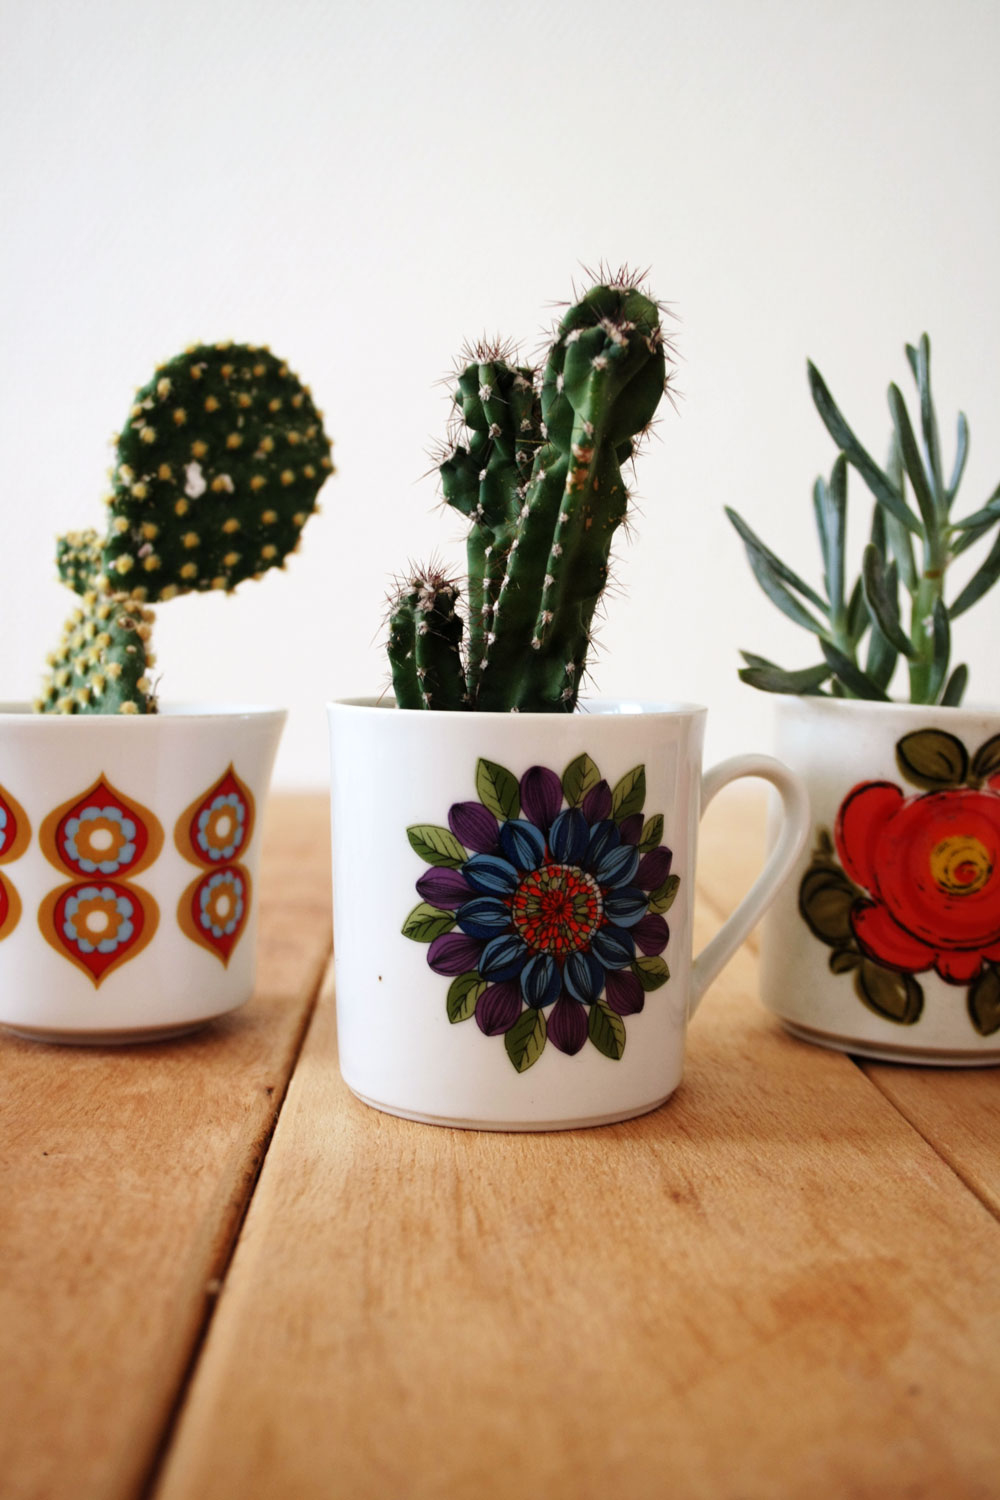 DIY - Teacup cactus planter